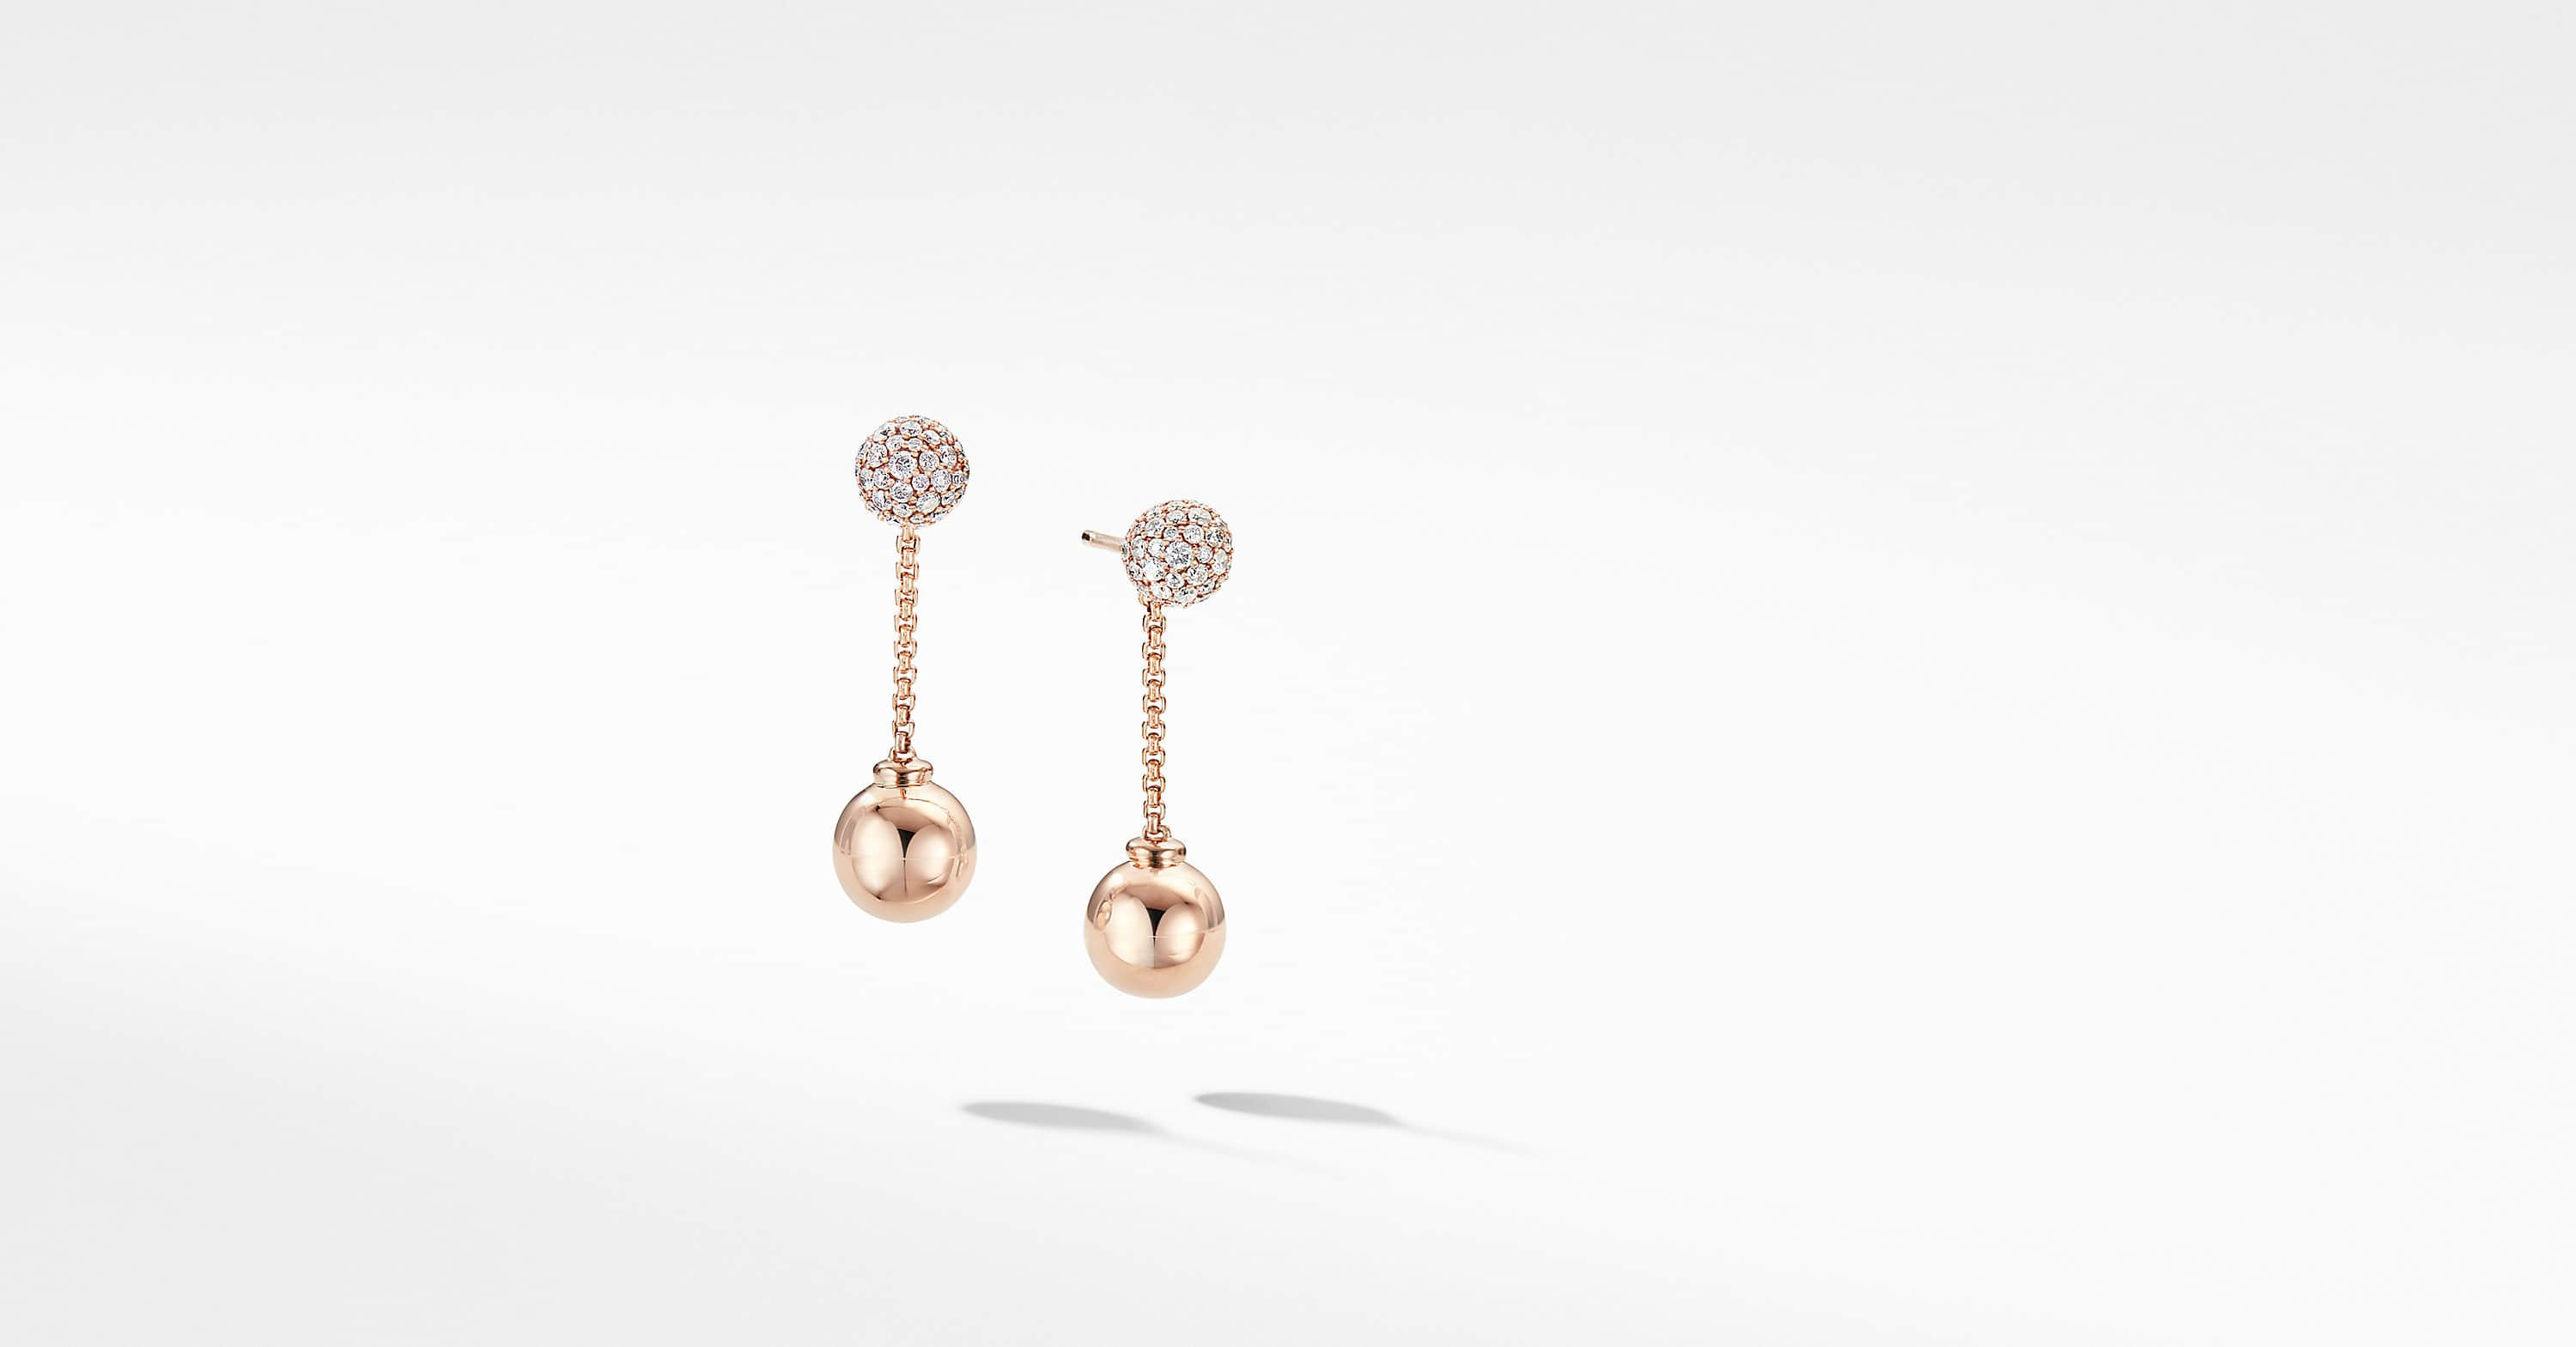 Solari Chain Drop Earring in 18K Rose Gold with Diamonds